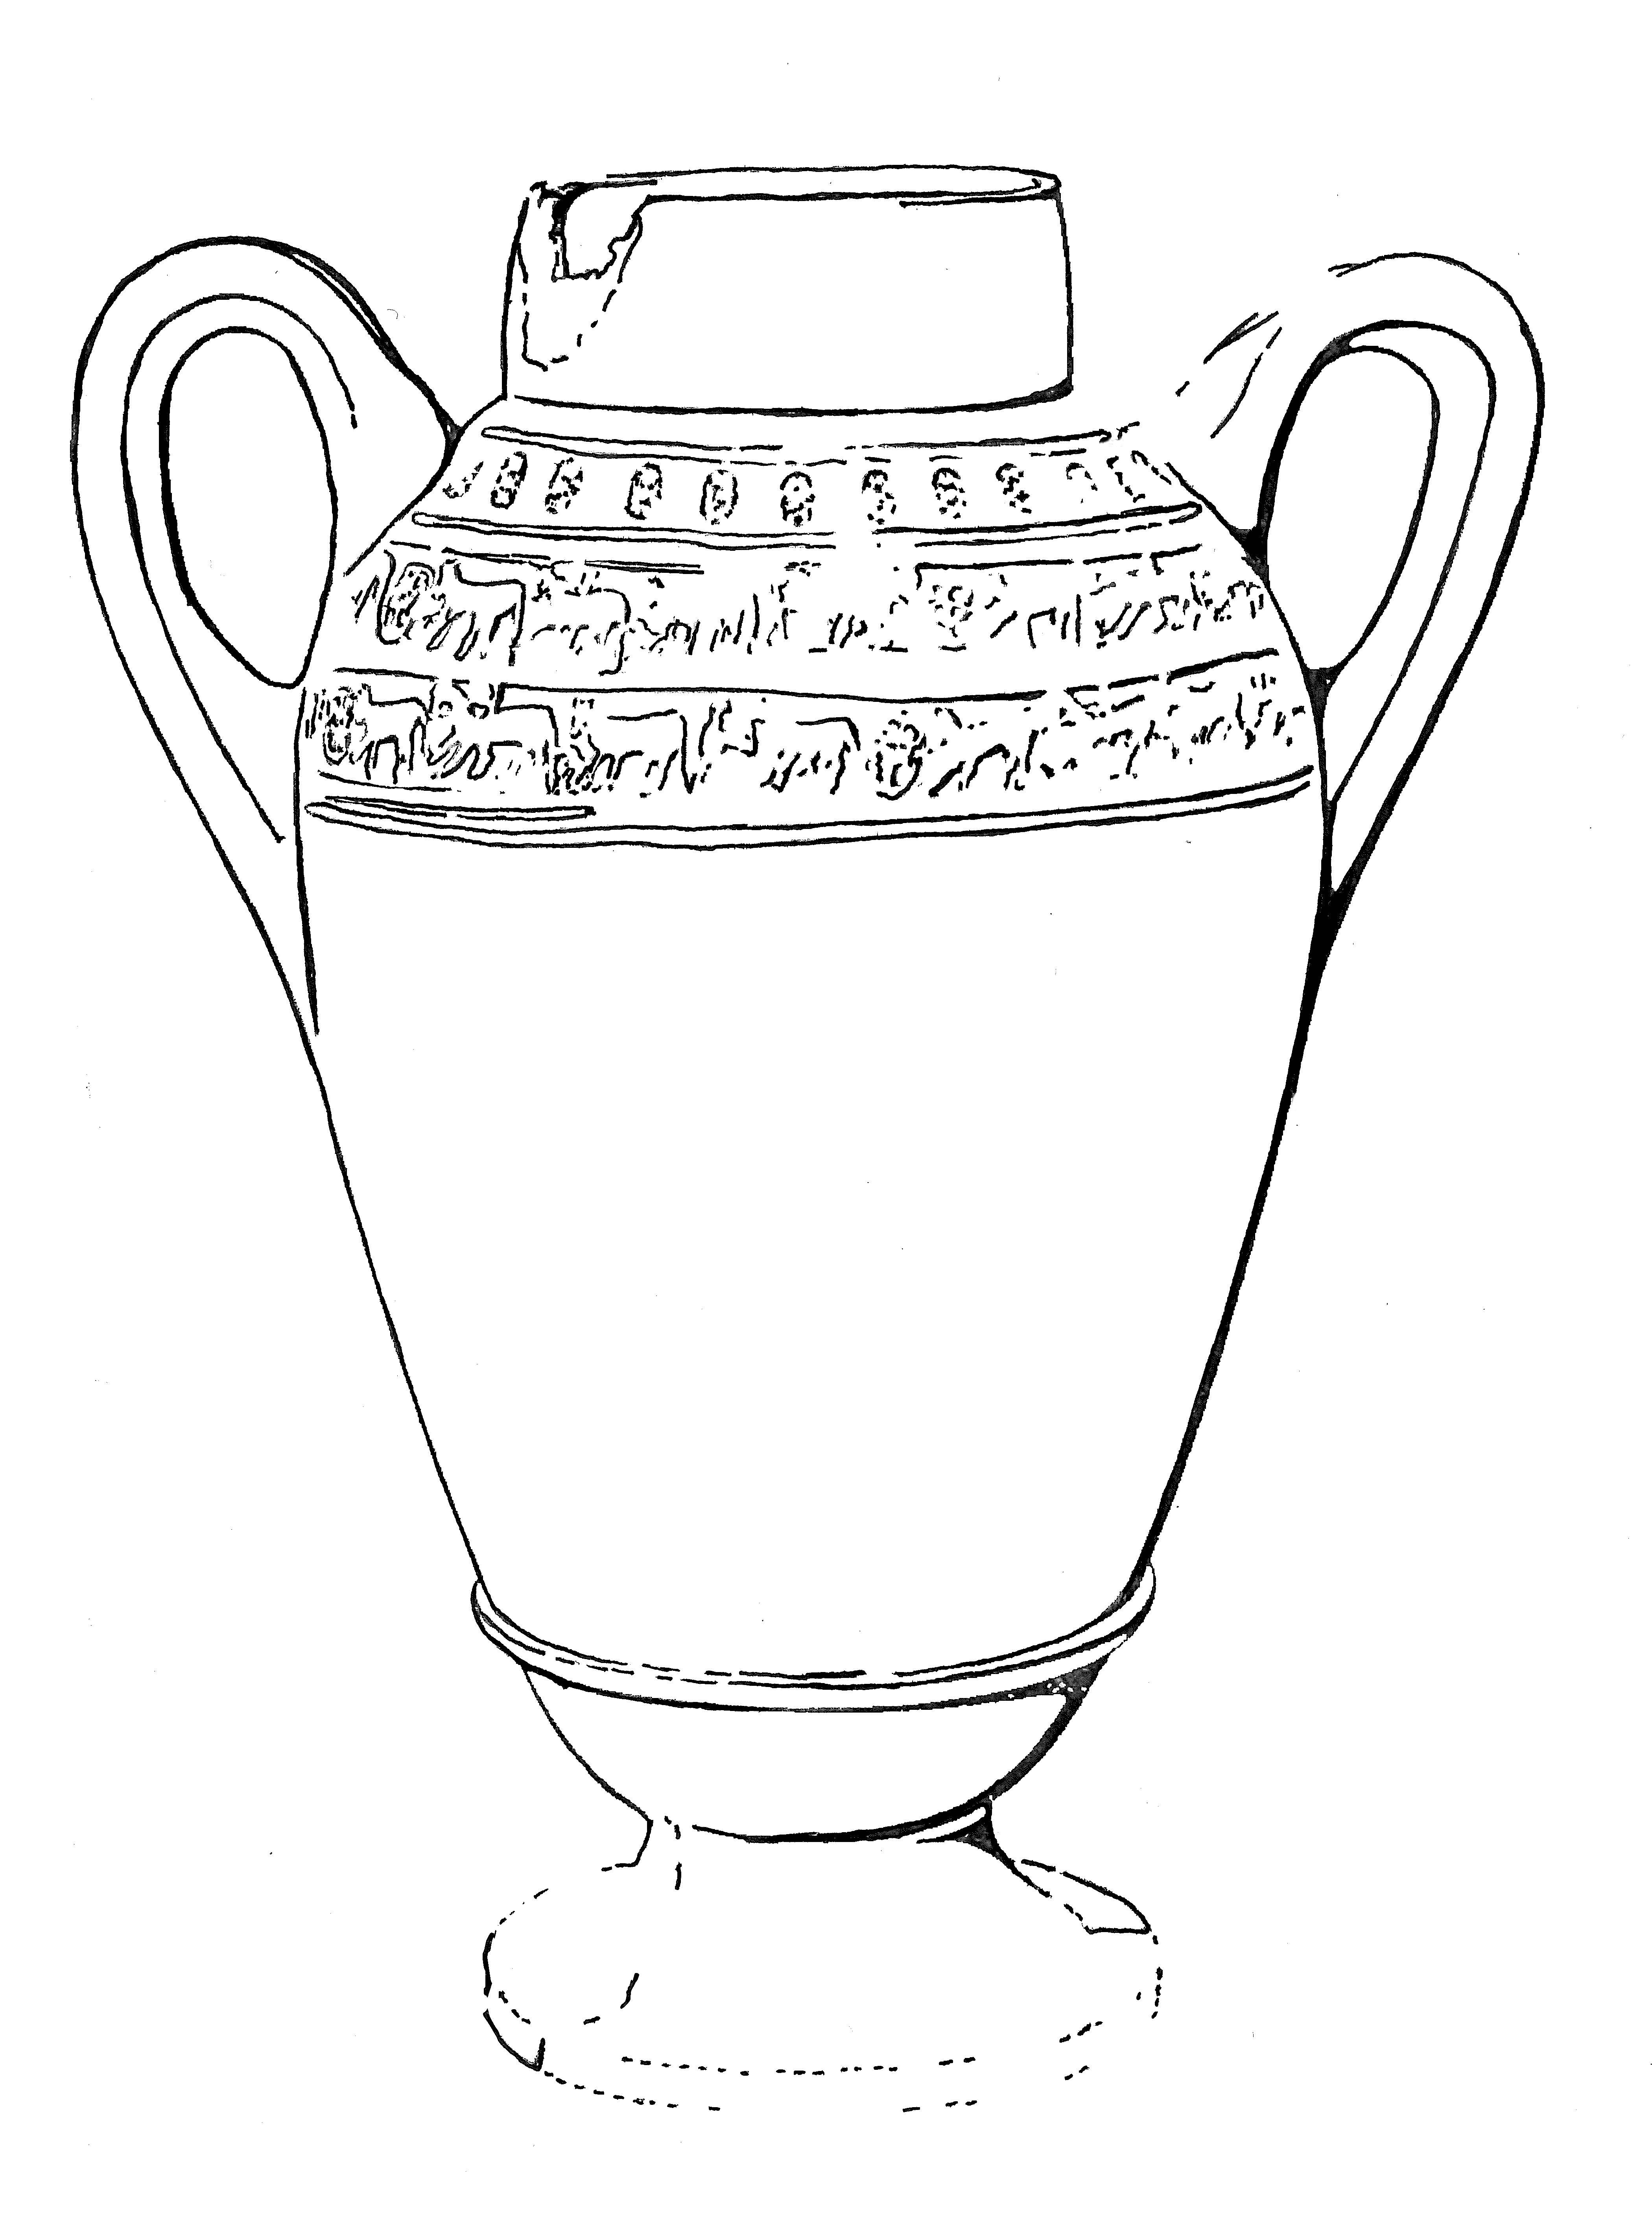 This drawing shows a vessel with two handles and two friezes of decoration around the shoulder area. Part of the foot is illustrated with dotted lines.